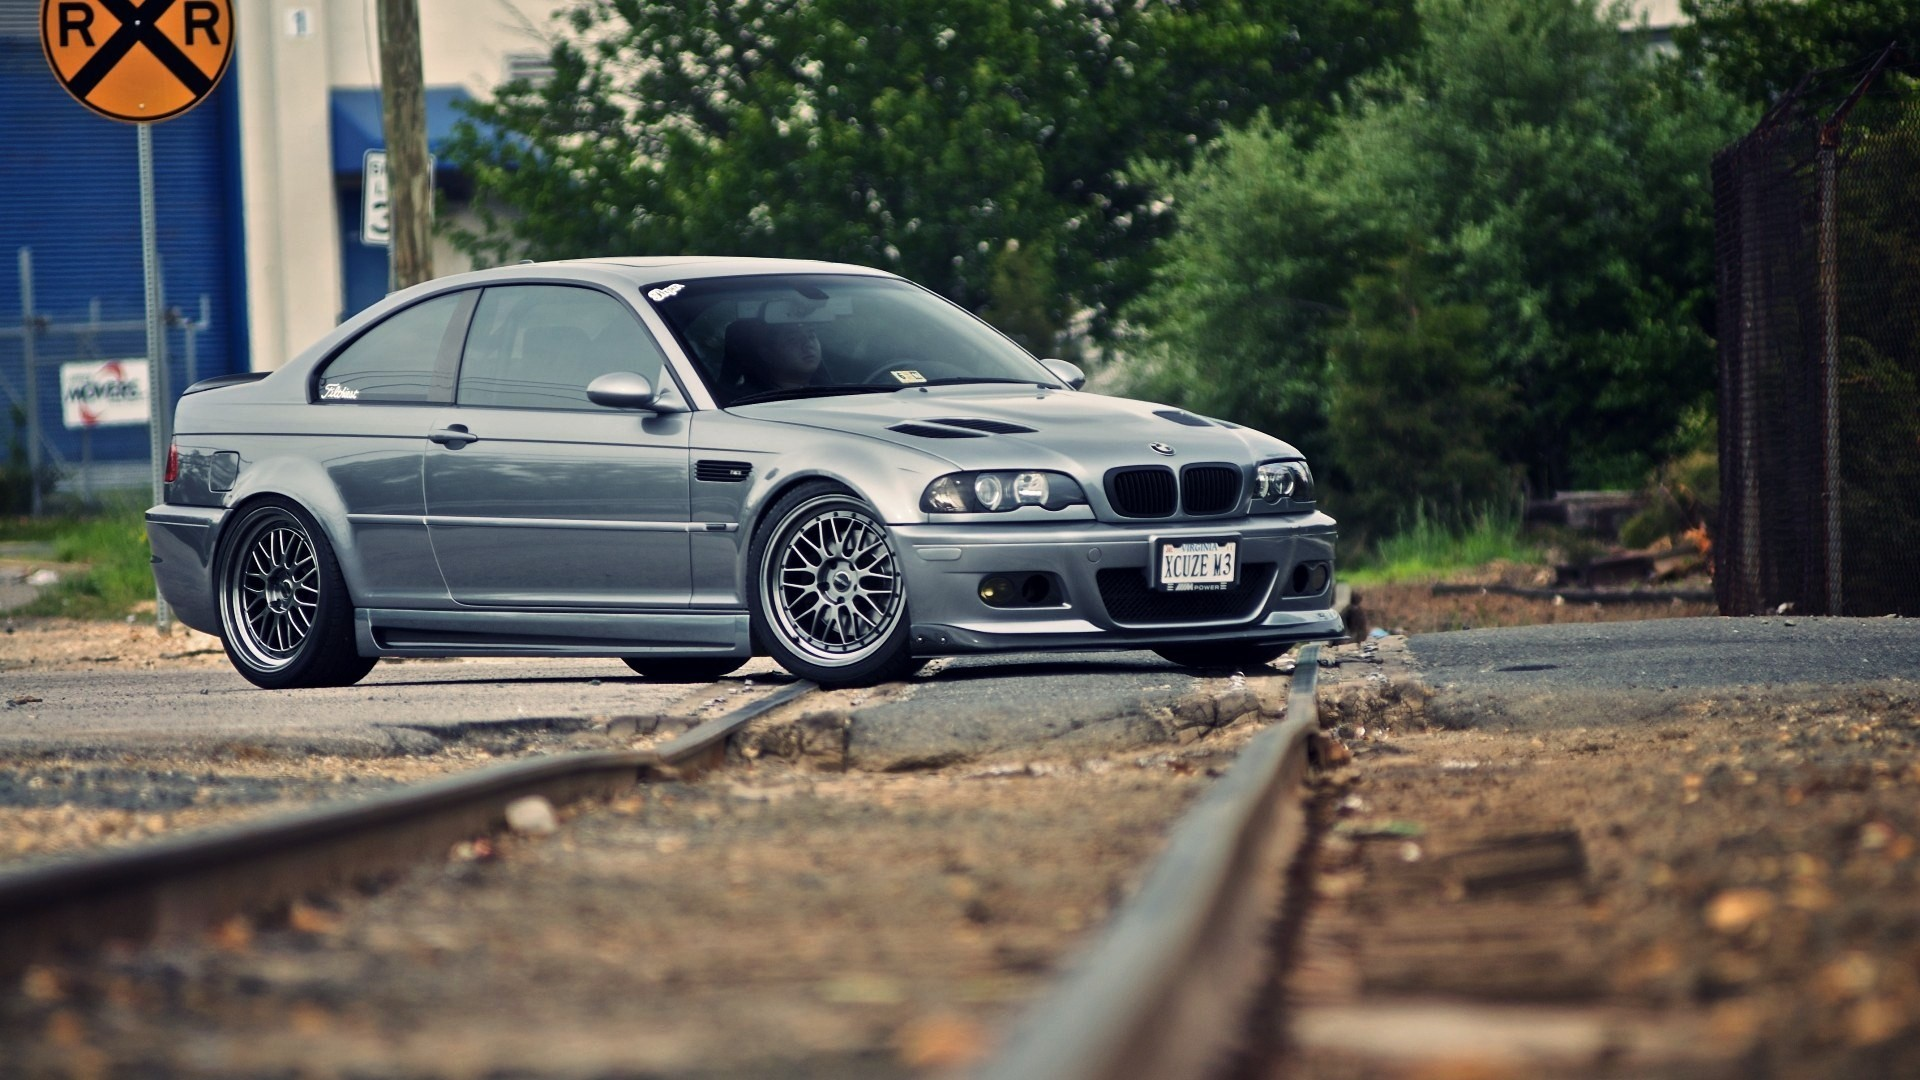 1920x1080 Bmw M3 E46 Wallpaper HD